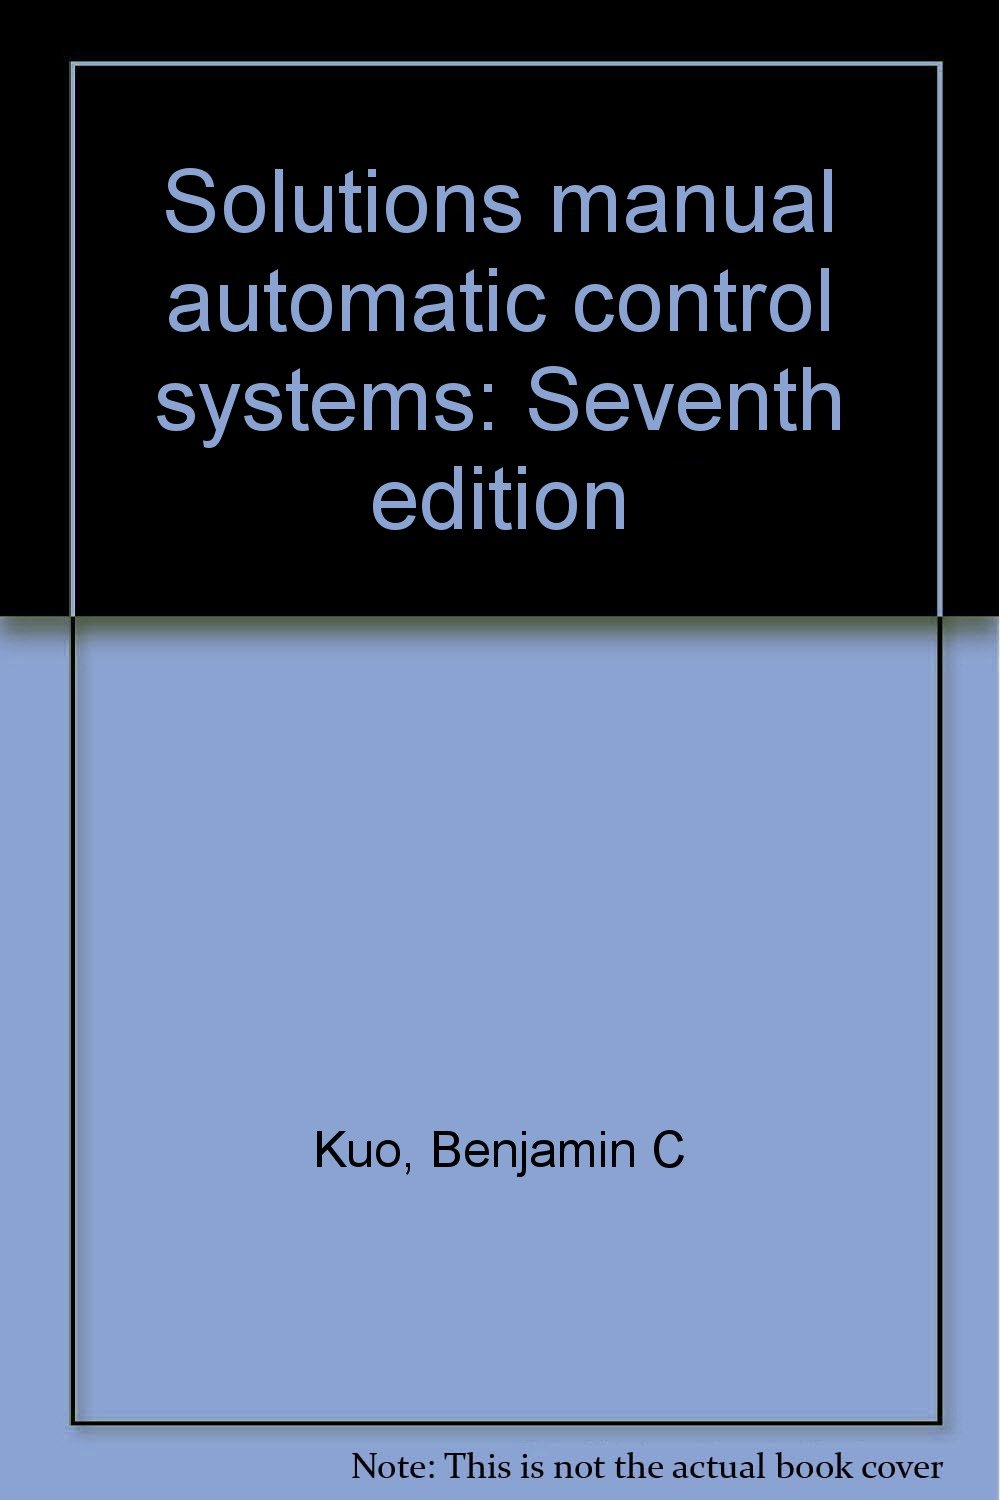 Solutions manual automatic control systems: Seventh edition: Benjamin C Kuo:  9780133097337: Amazon.com: Books